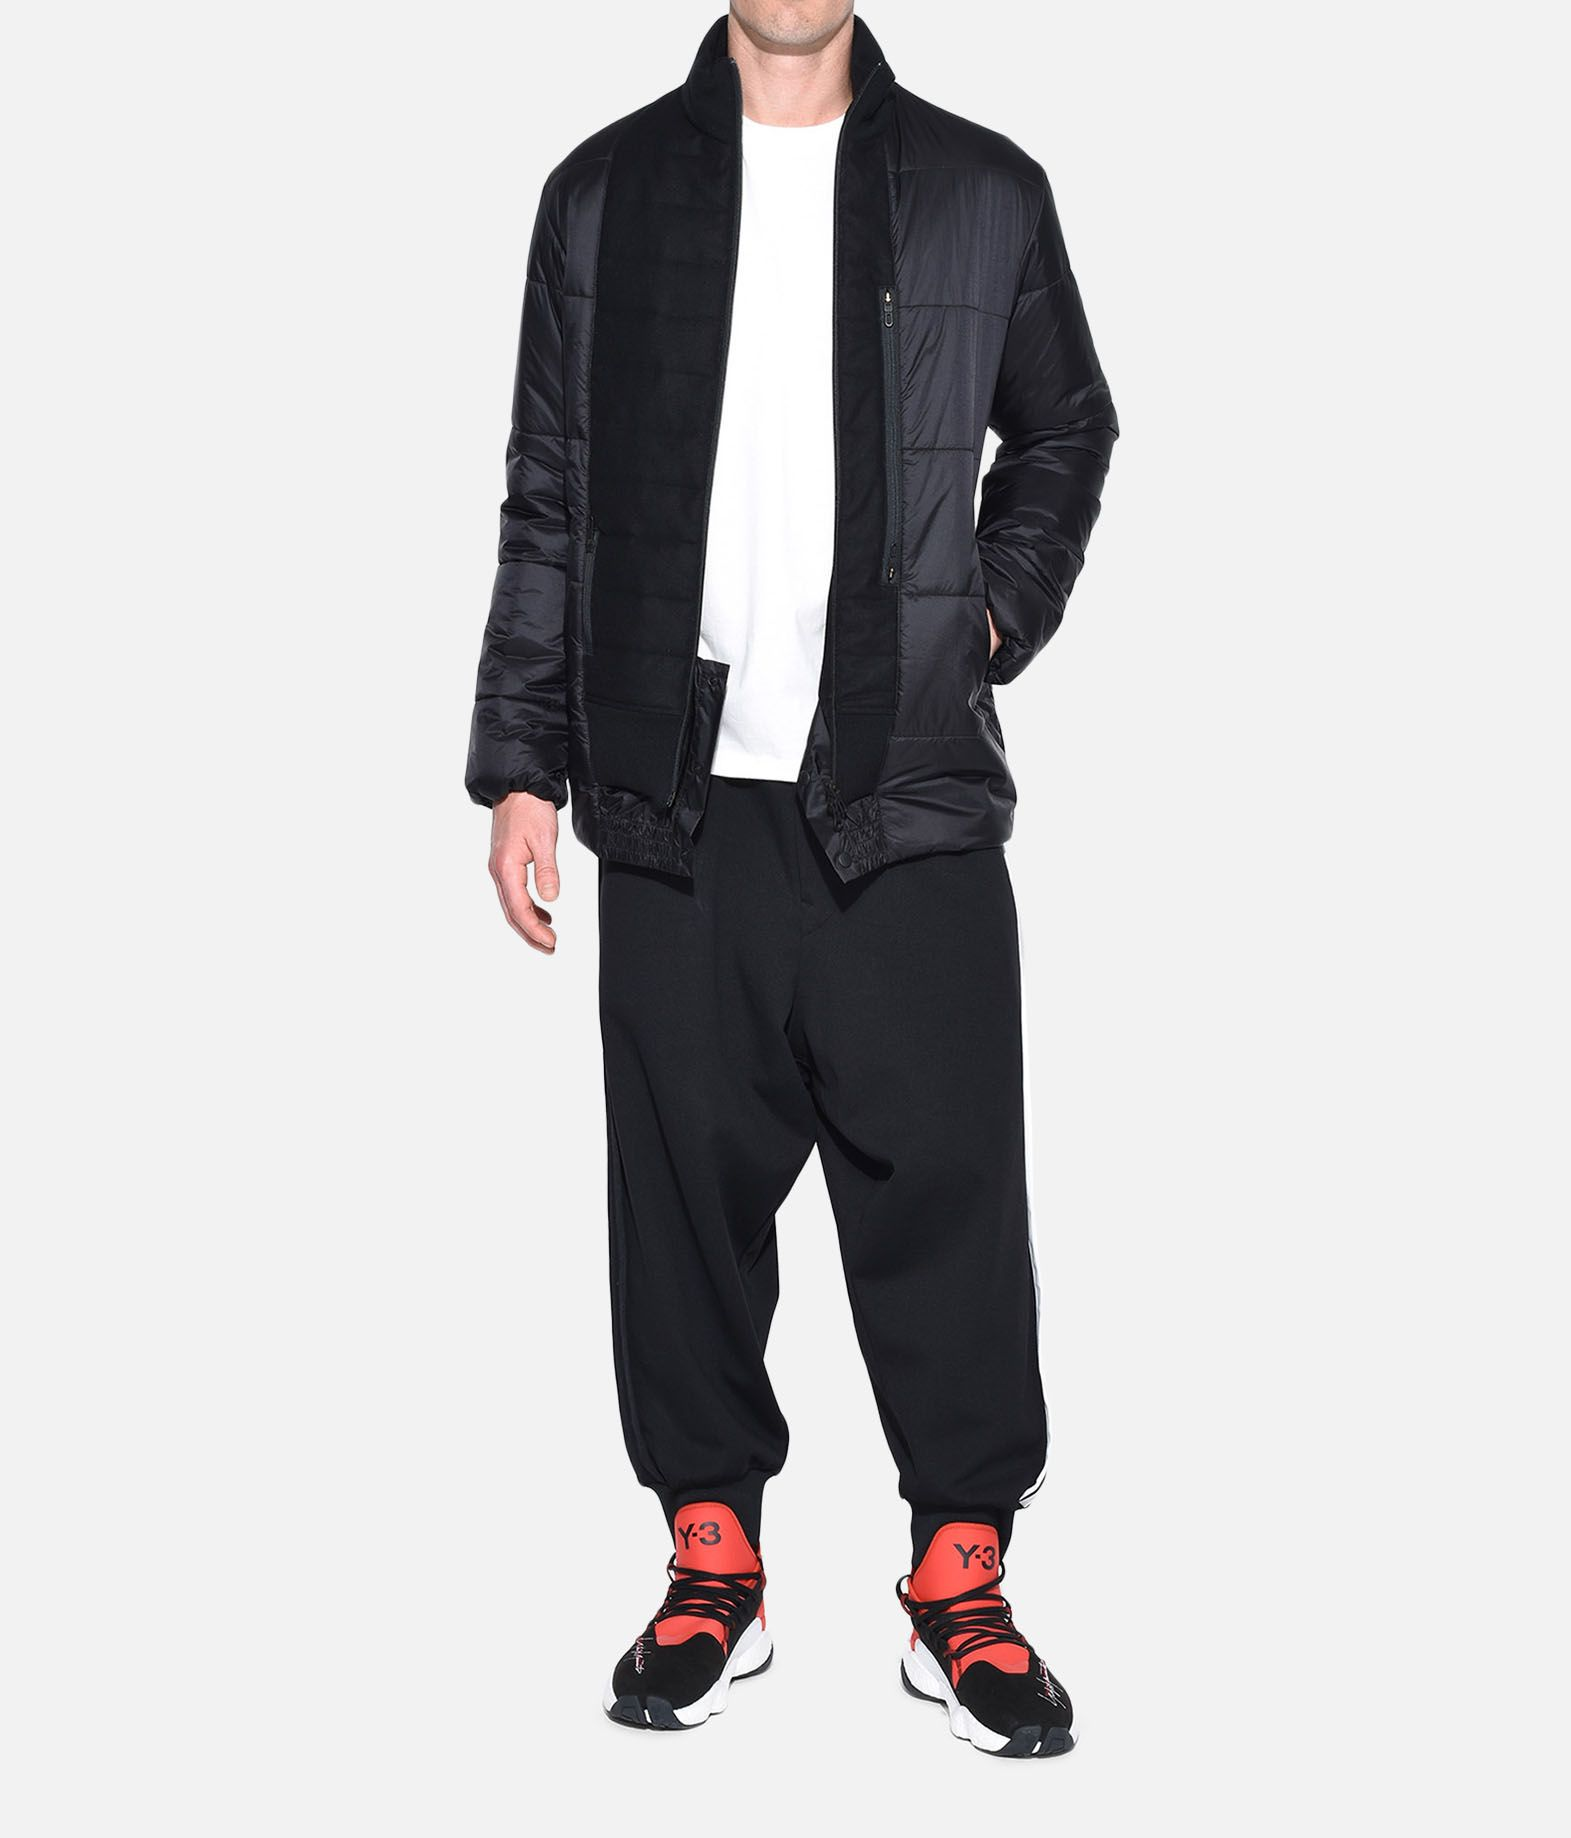 Y-3 Y-3 Patchwork Down Jacket Down jacket Man a